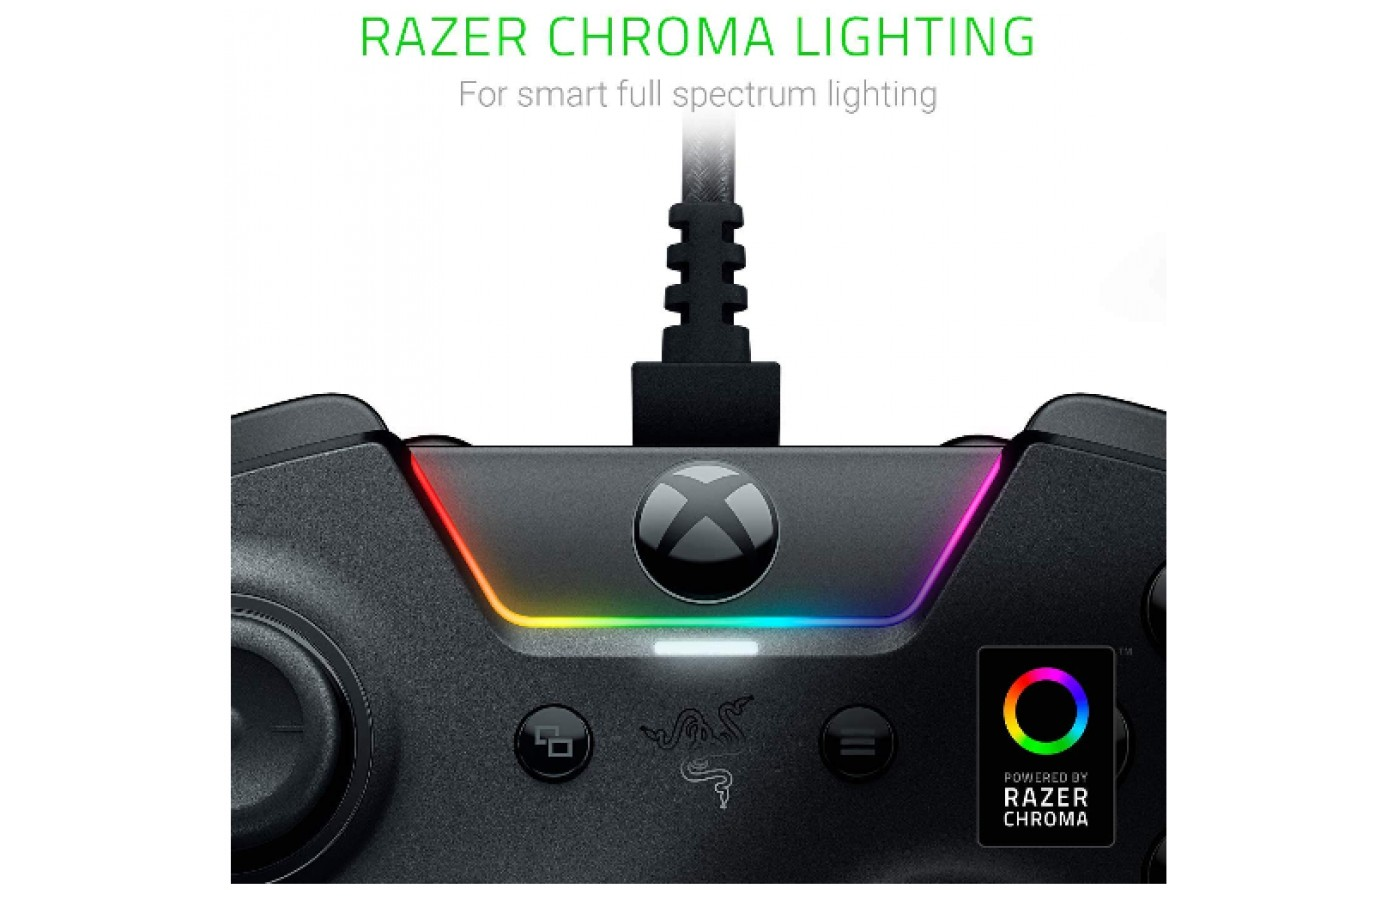 The Lights are comepletely customizable on the XBox app.